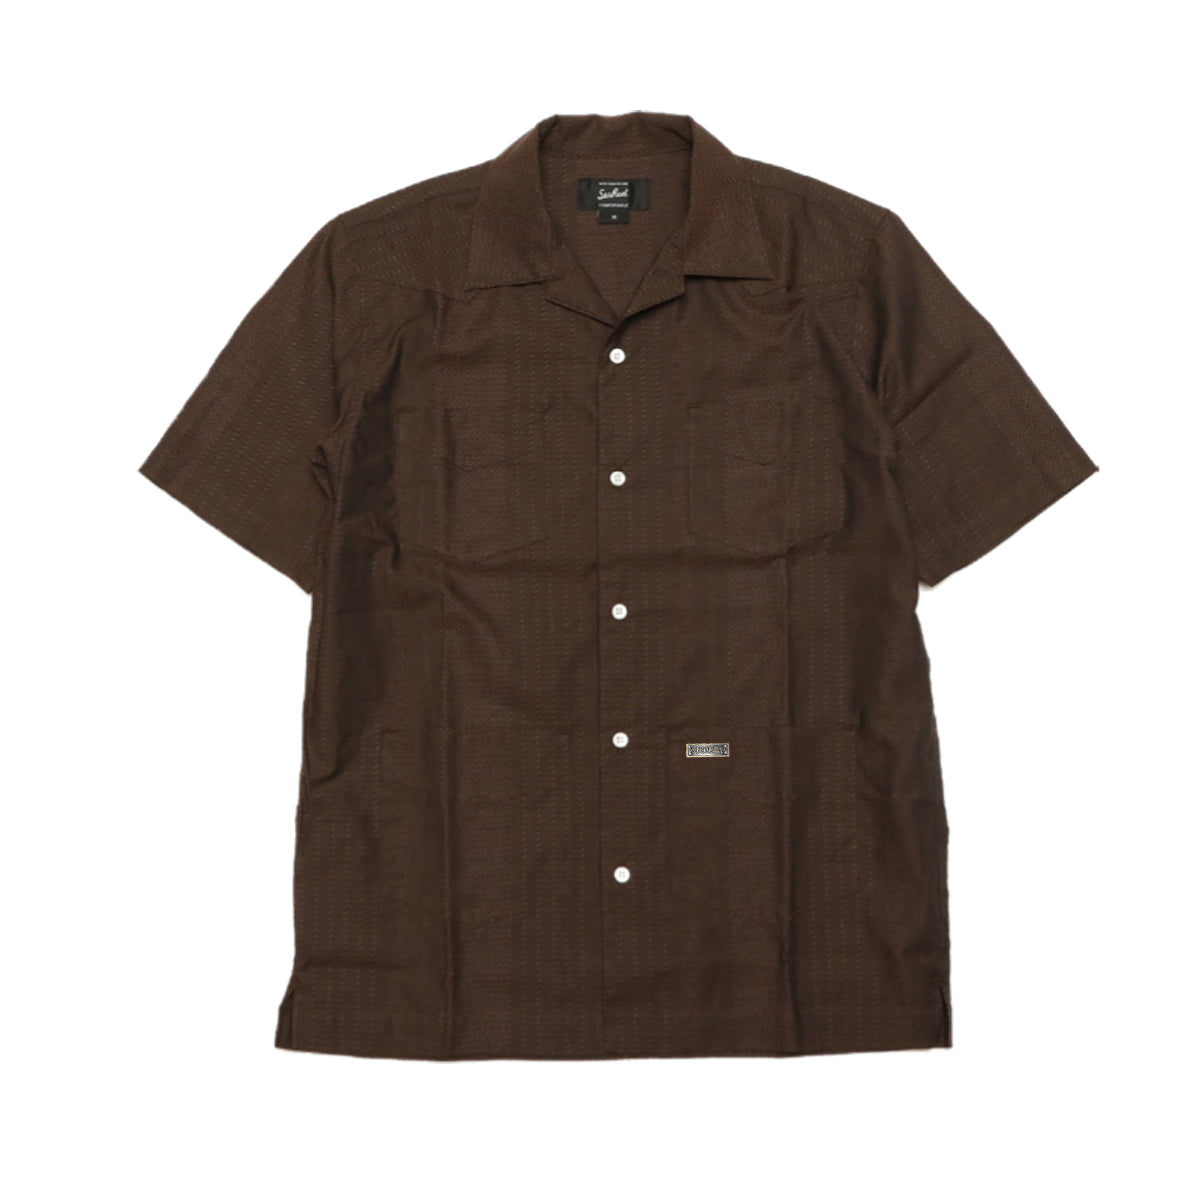 Christopher_Organic Cotton Shirt